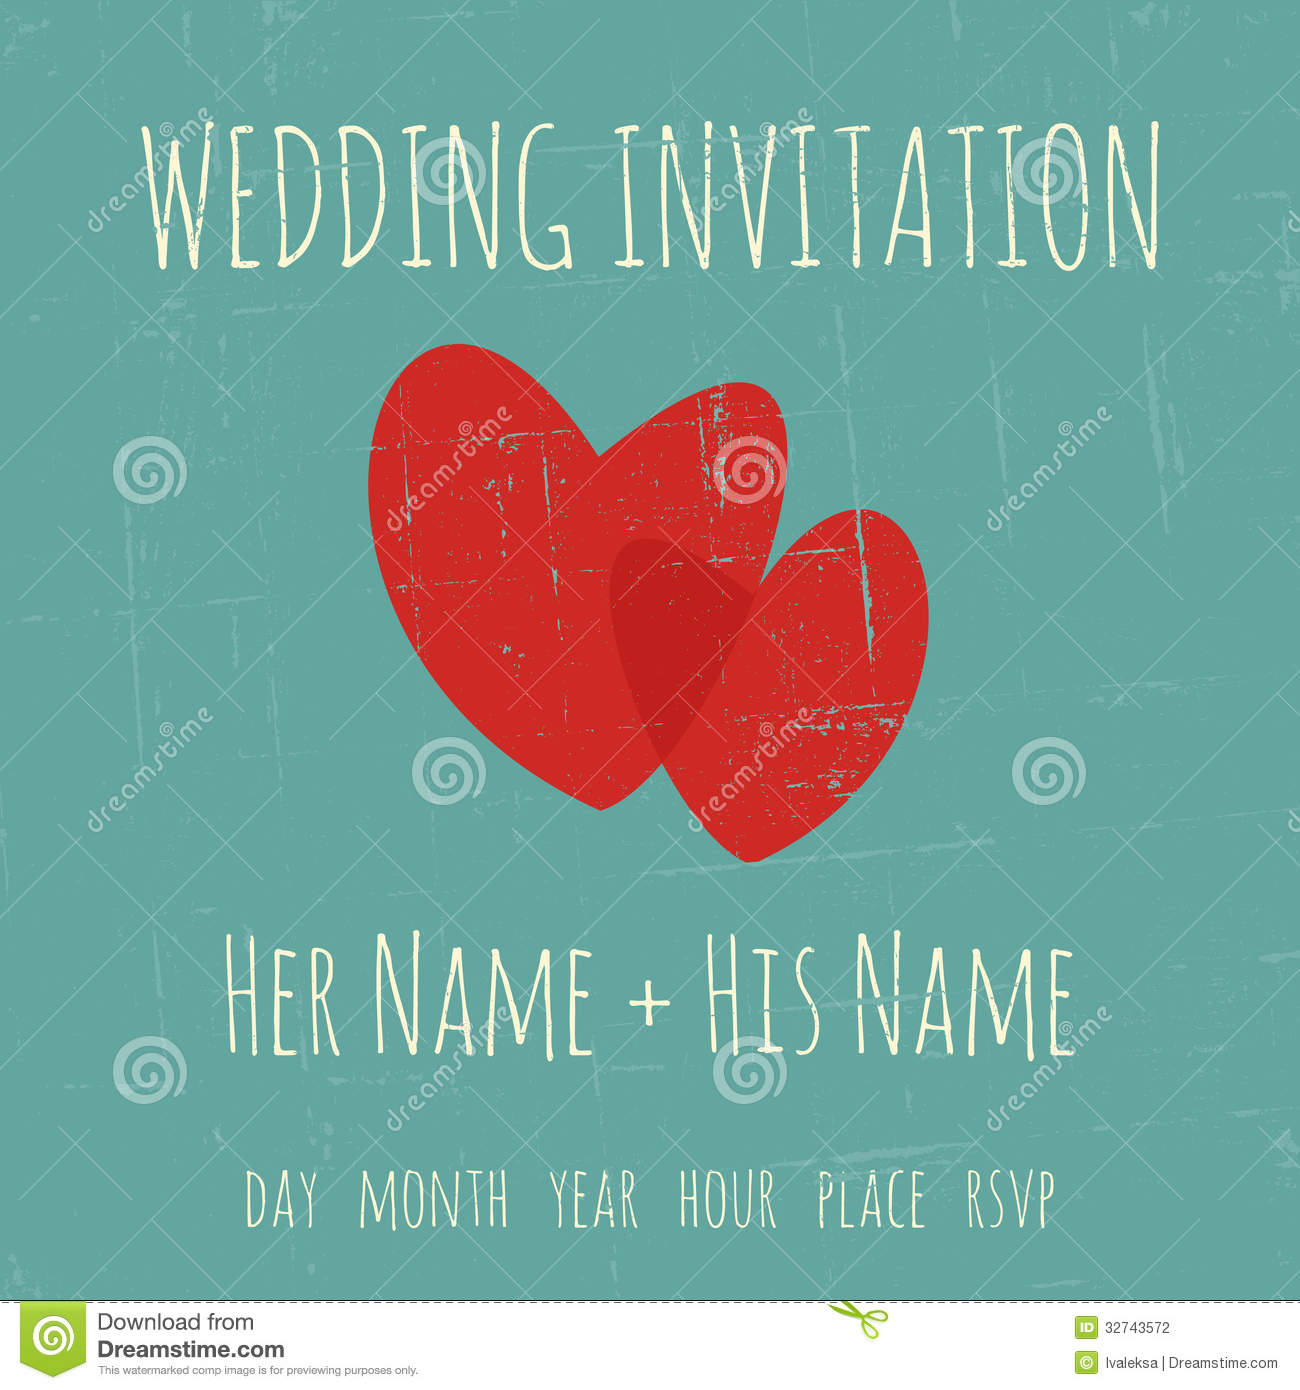 Wedding Invitation Template Stock Vector - Illustration of hearts ...